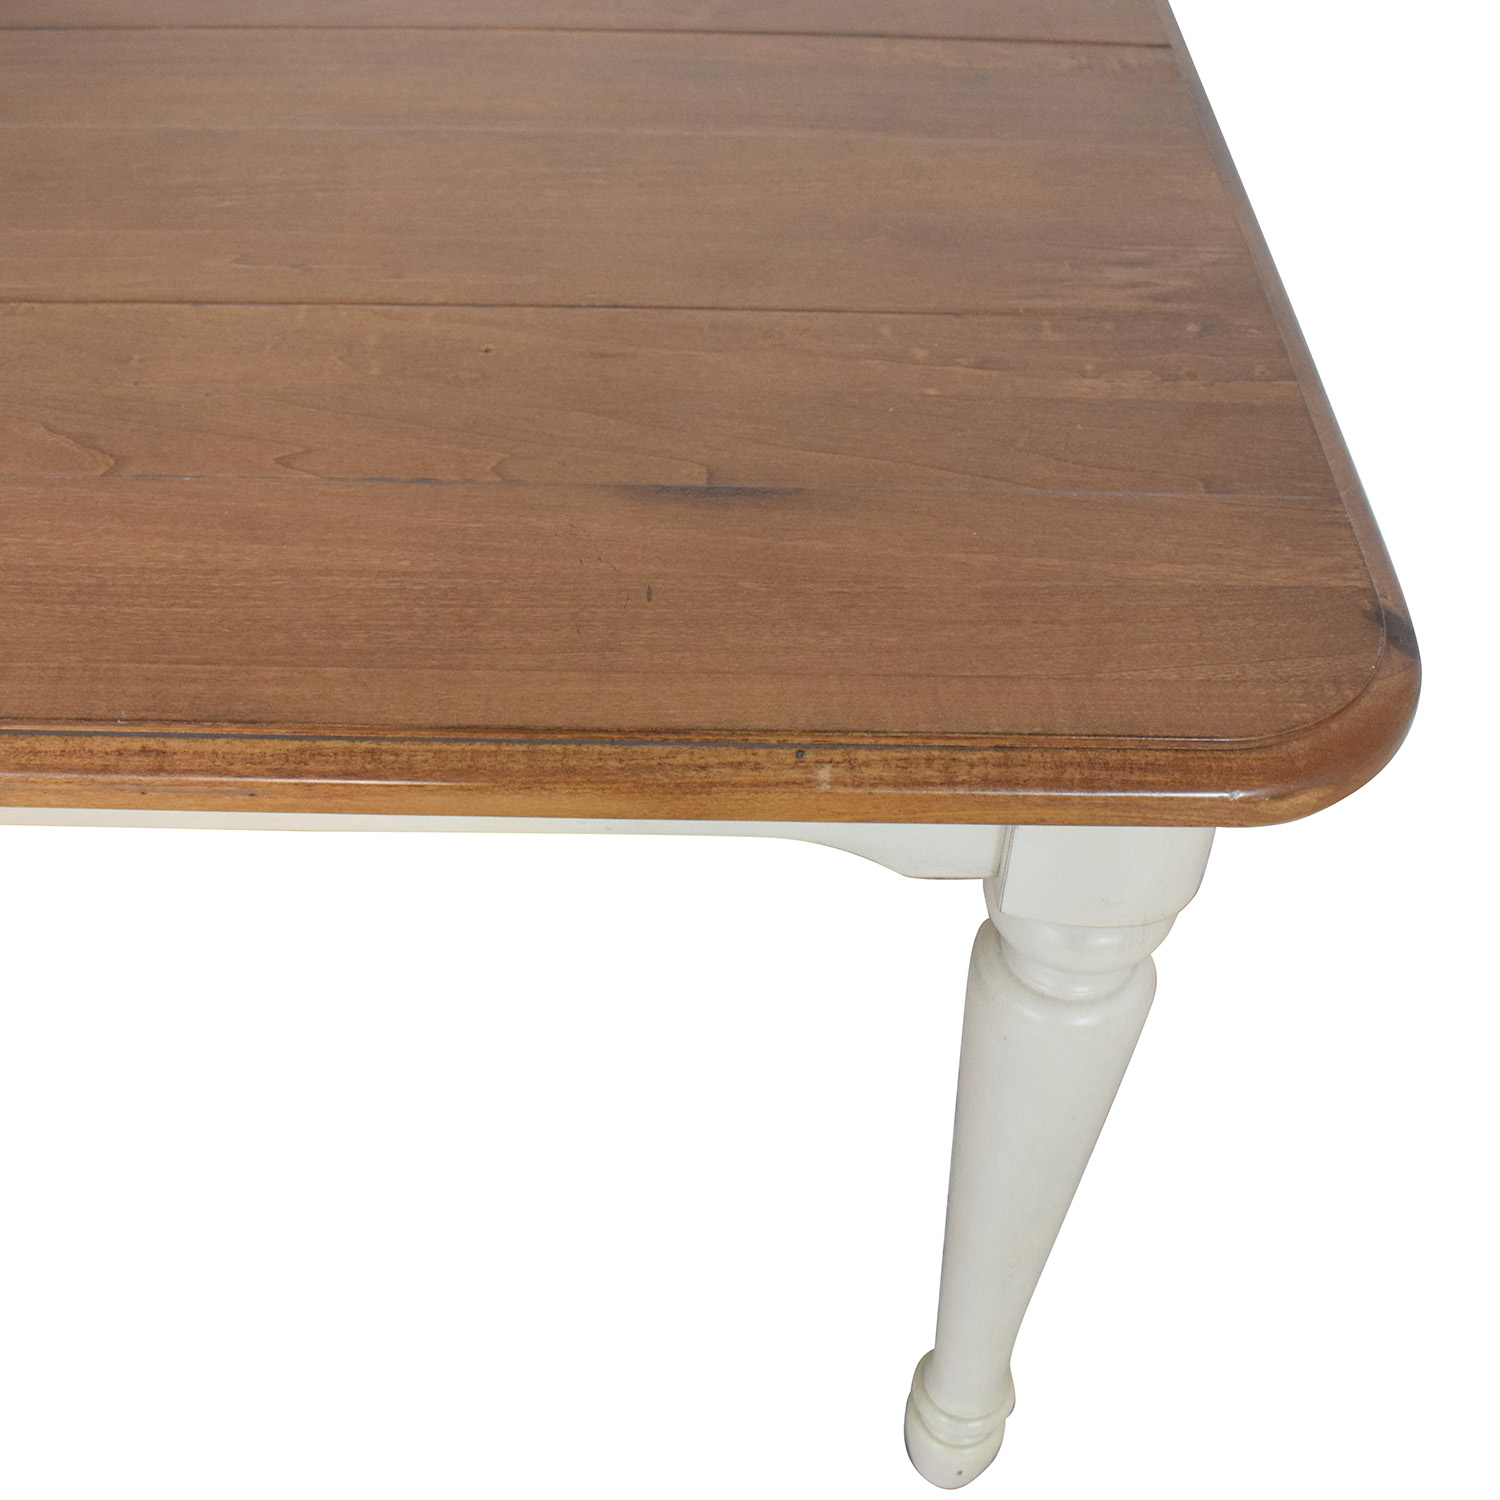 Cresent Furniture Cresent Fine Furniture Farmhouse Style Dining Table discount